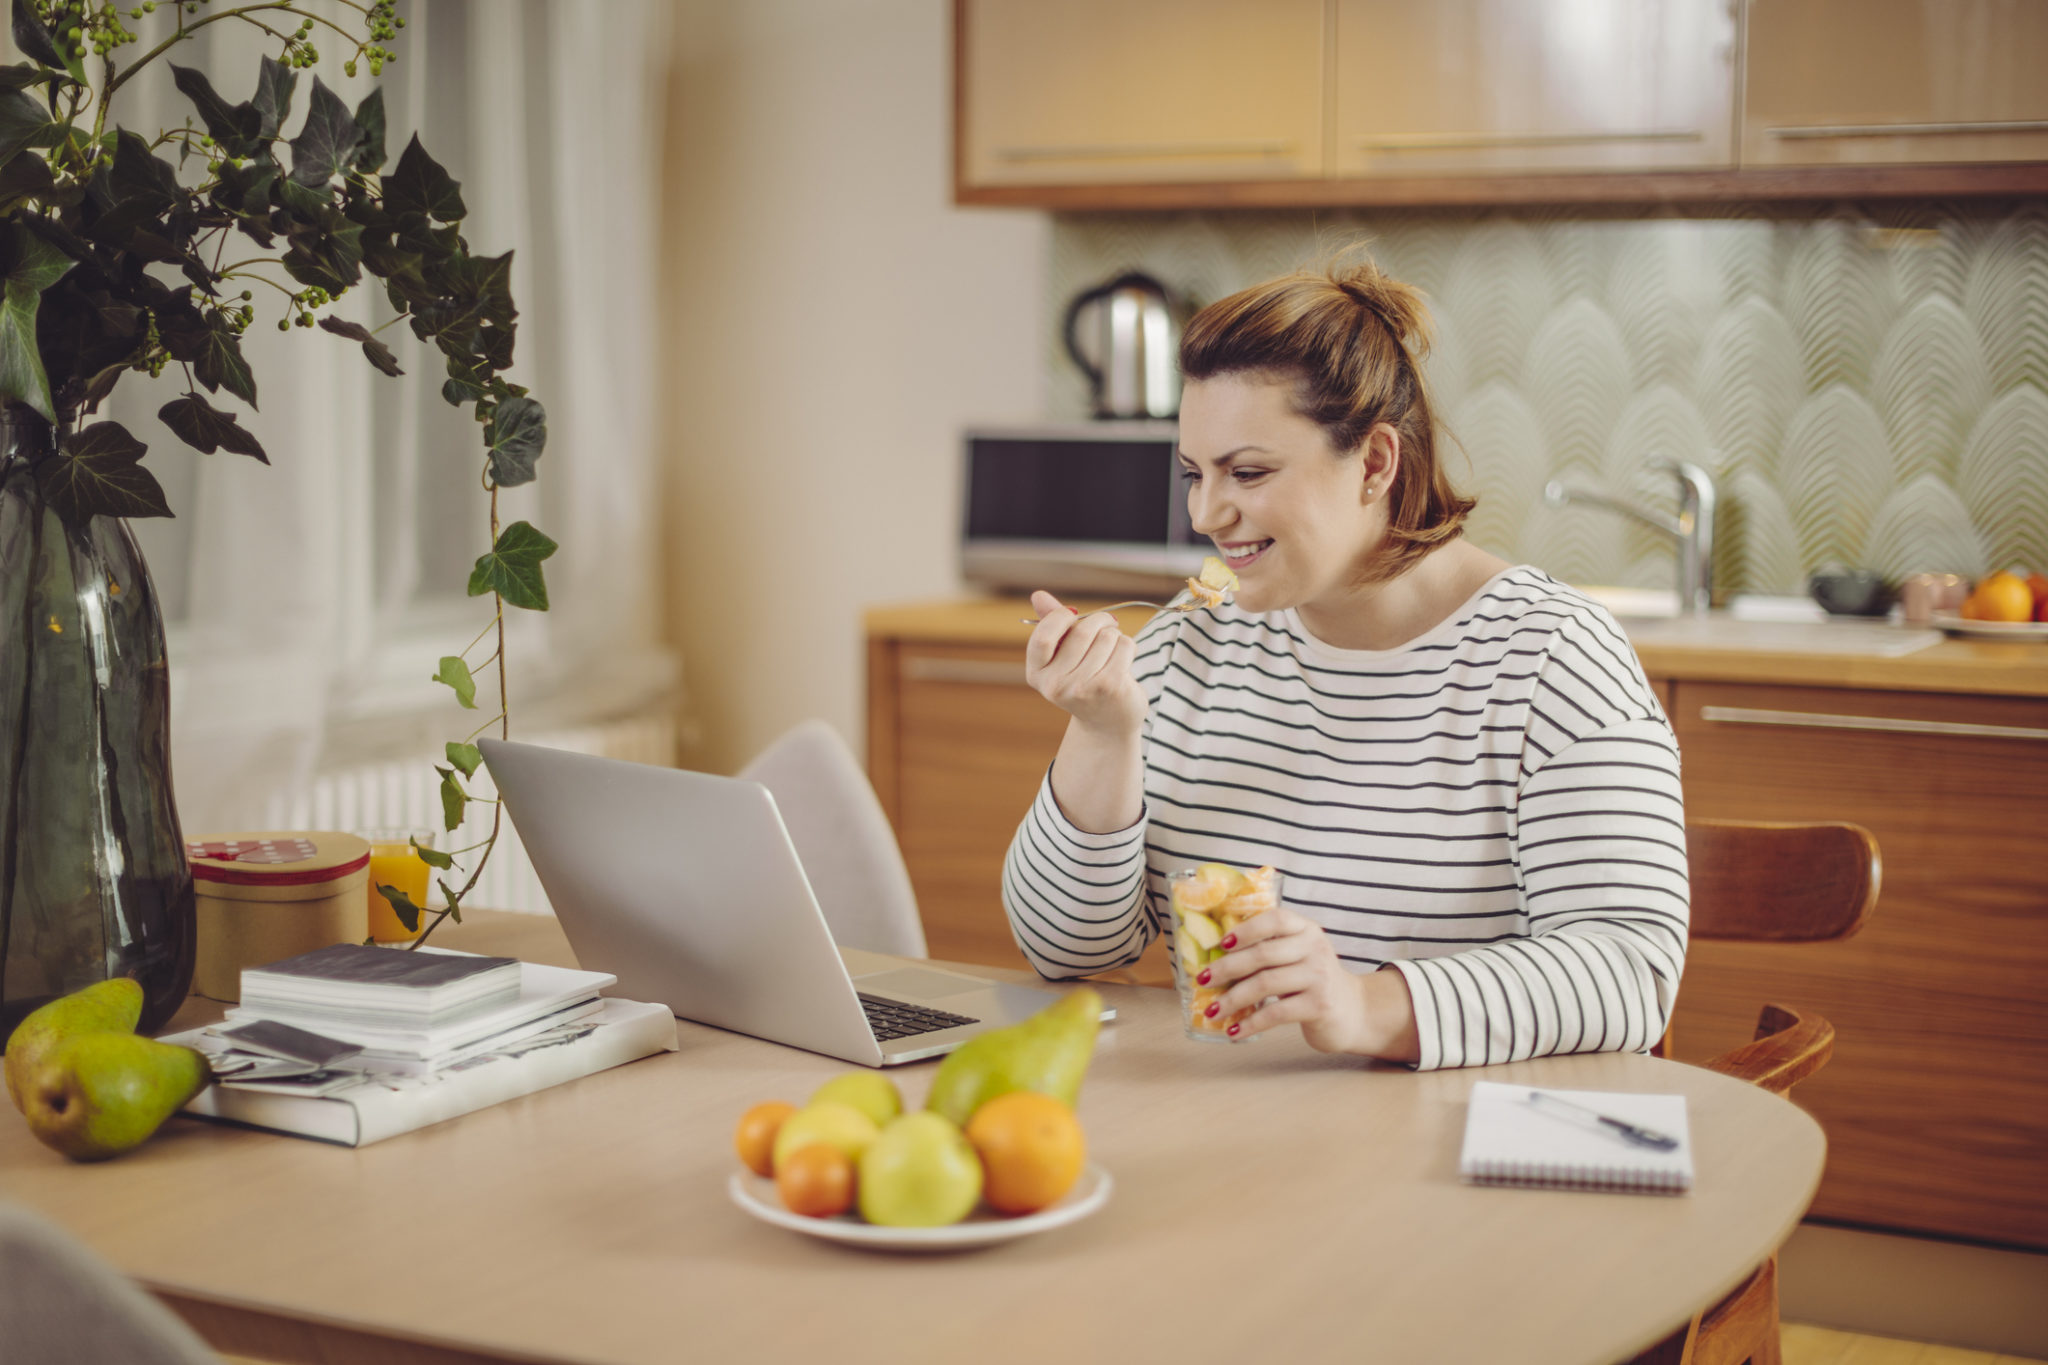 Young woman at home eating healthy fruit and working on her laptop